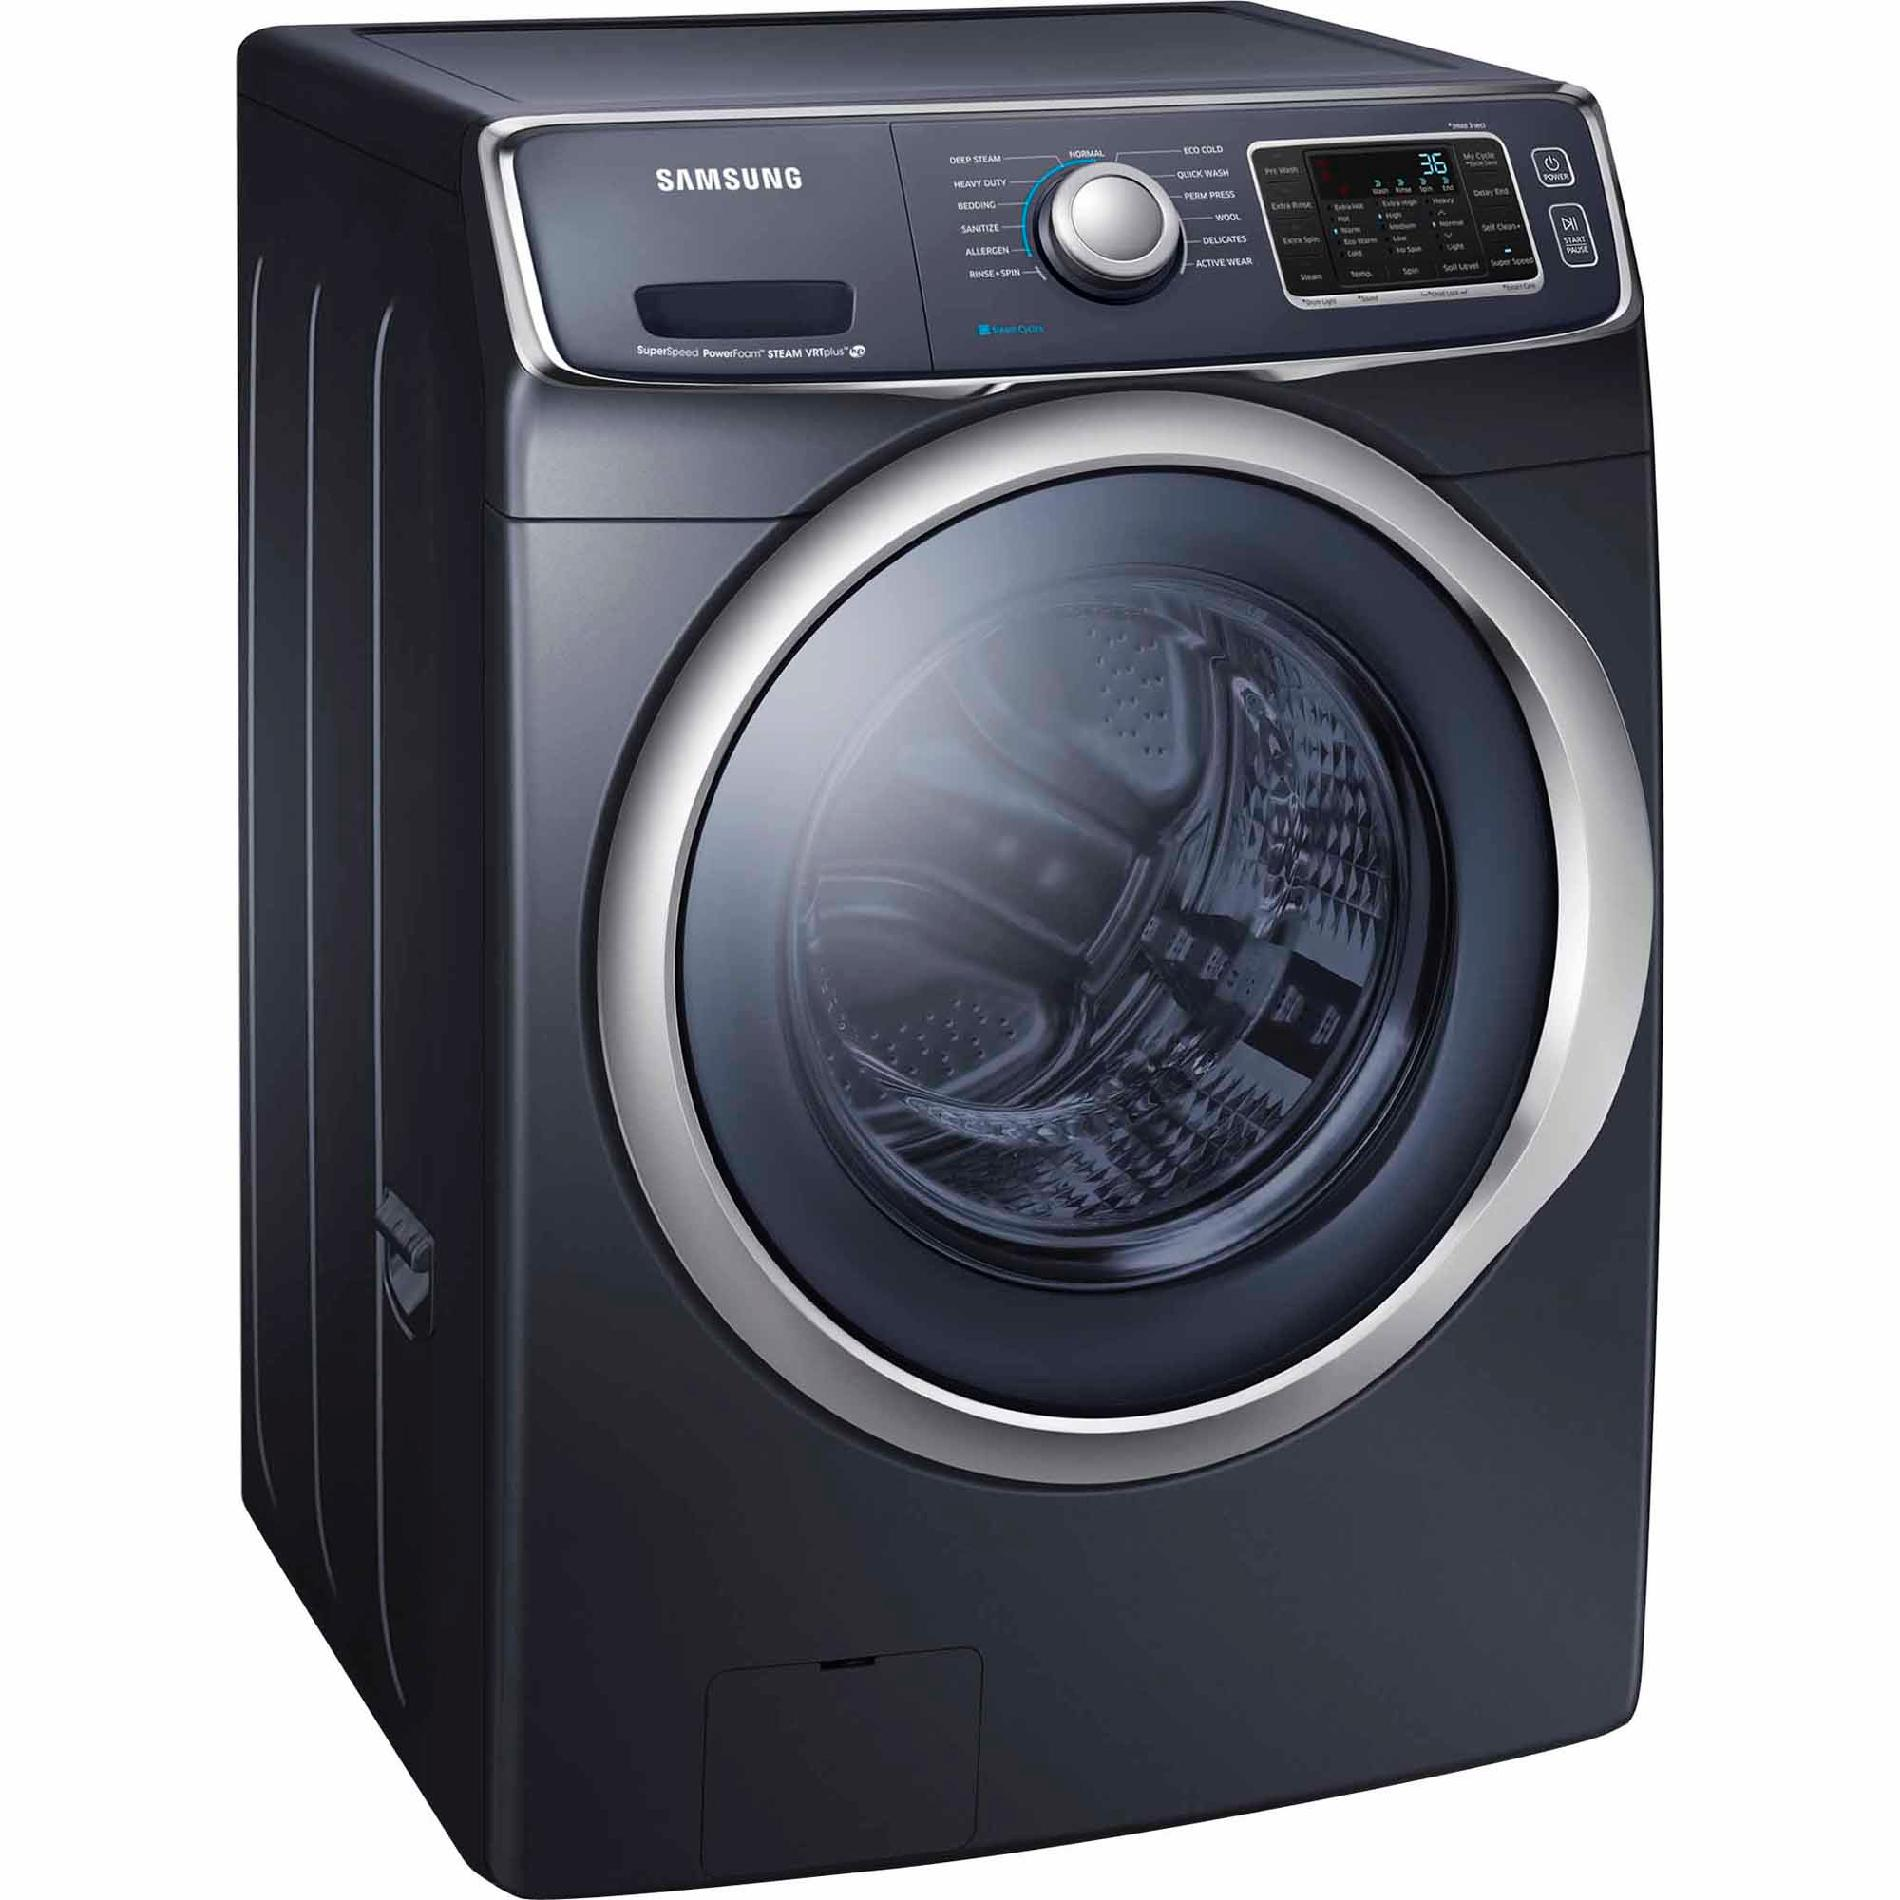 Samsung 4.5 cu. ft. Front-Load Washer - Onyx